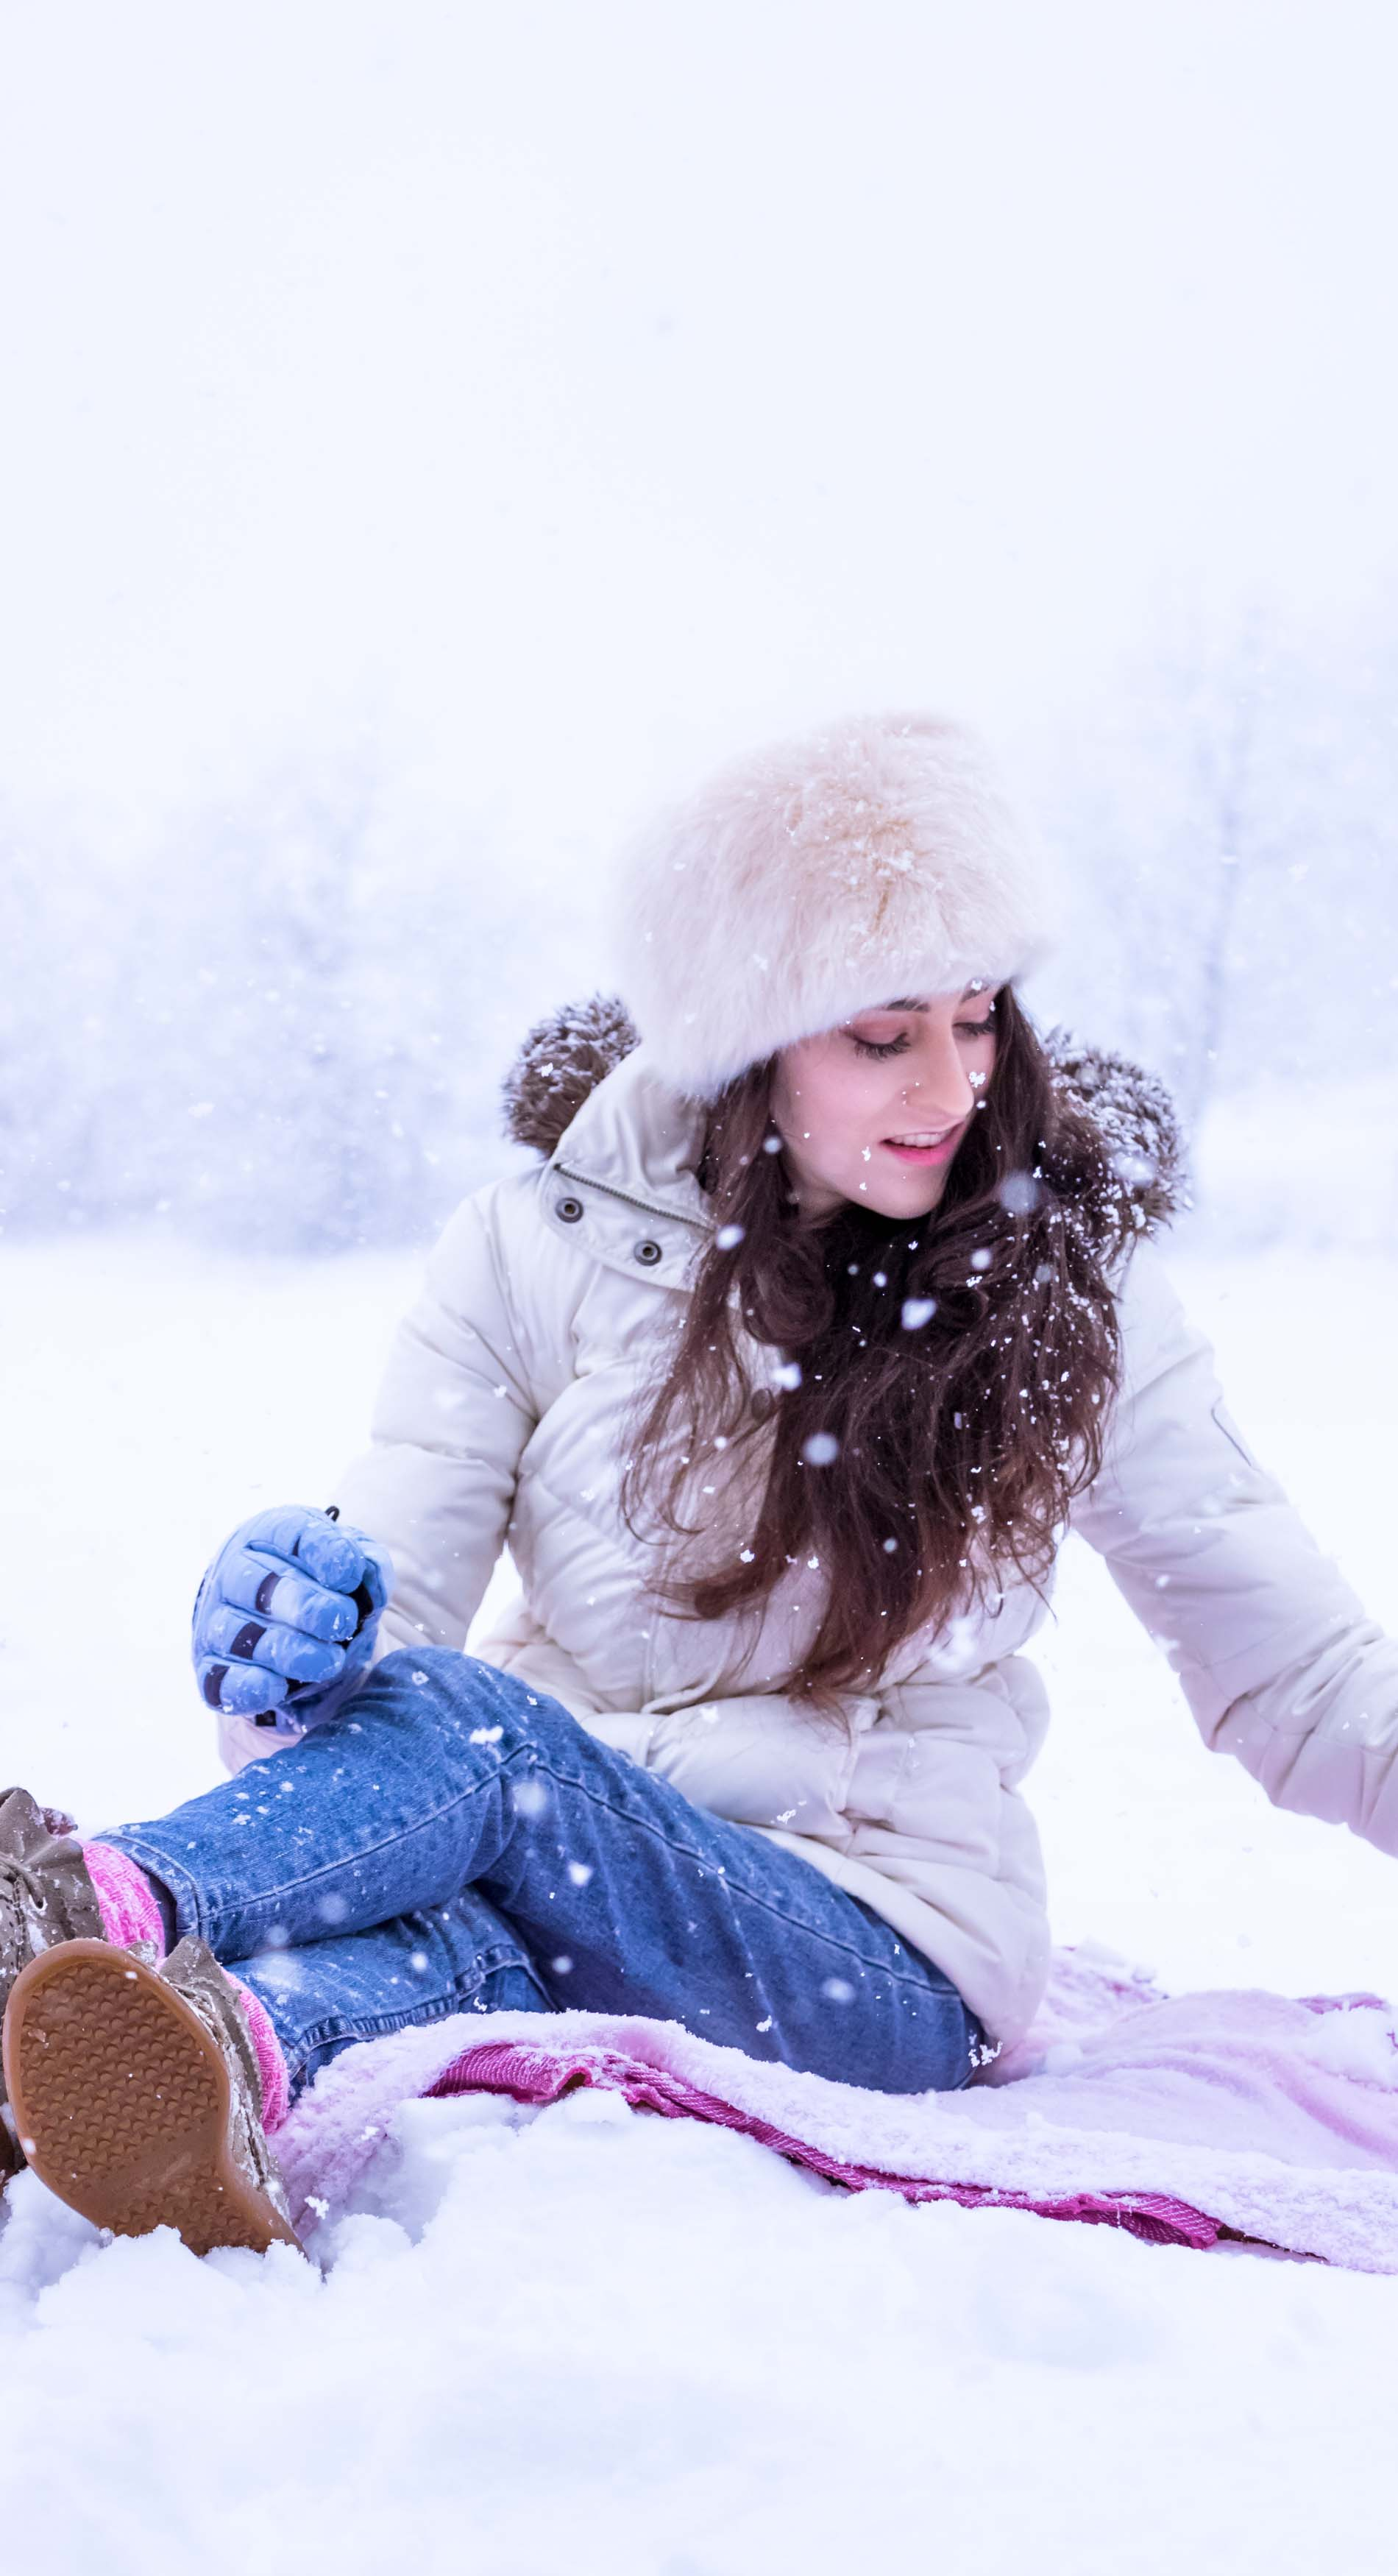 Fashion Blogger Veronika Lipar of Brunette from Wall Street wearing white down puffer jacket, blue jeans, blue snow gloves, white faux fur hat, pink wool socks and Isabel Marant Bobby sneakers, playing in the snow